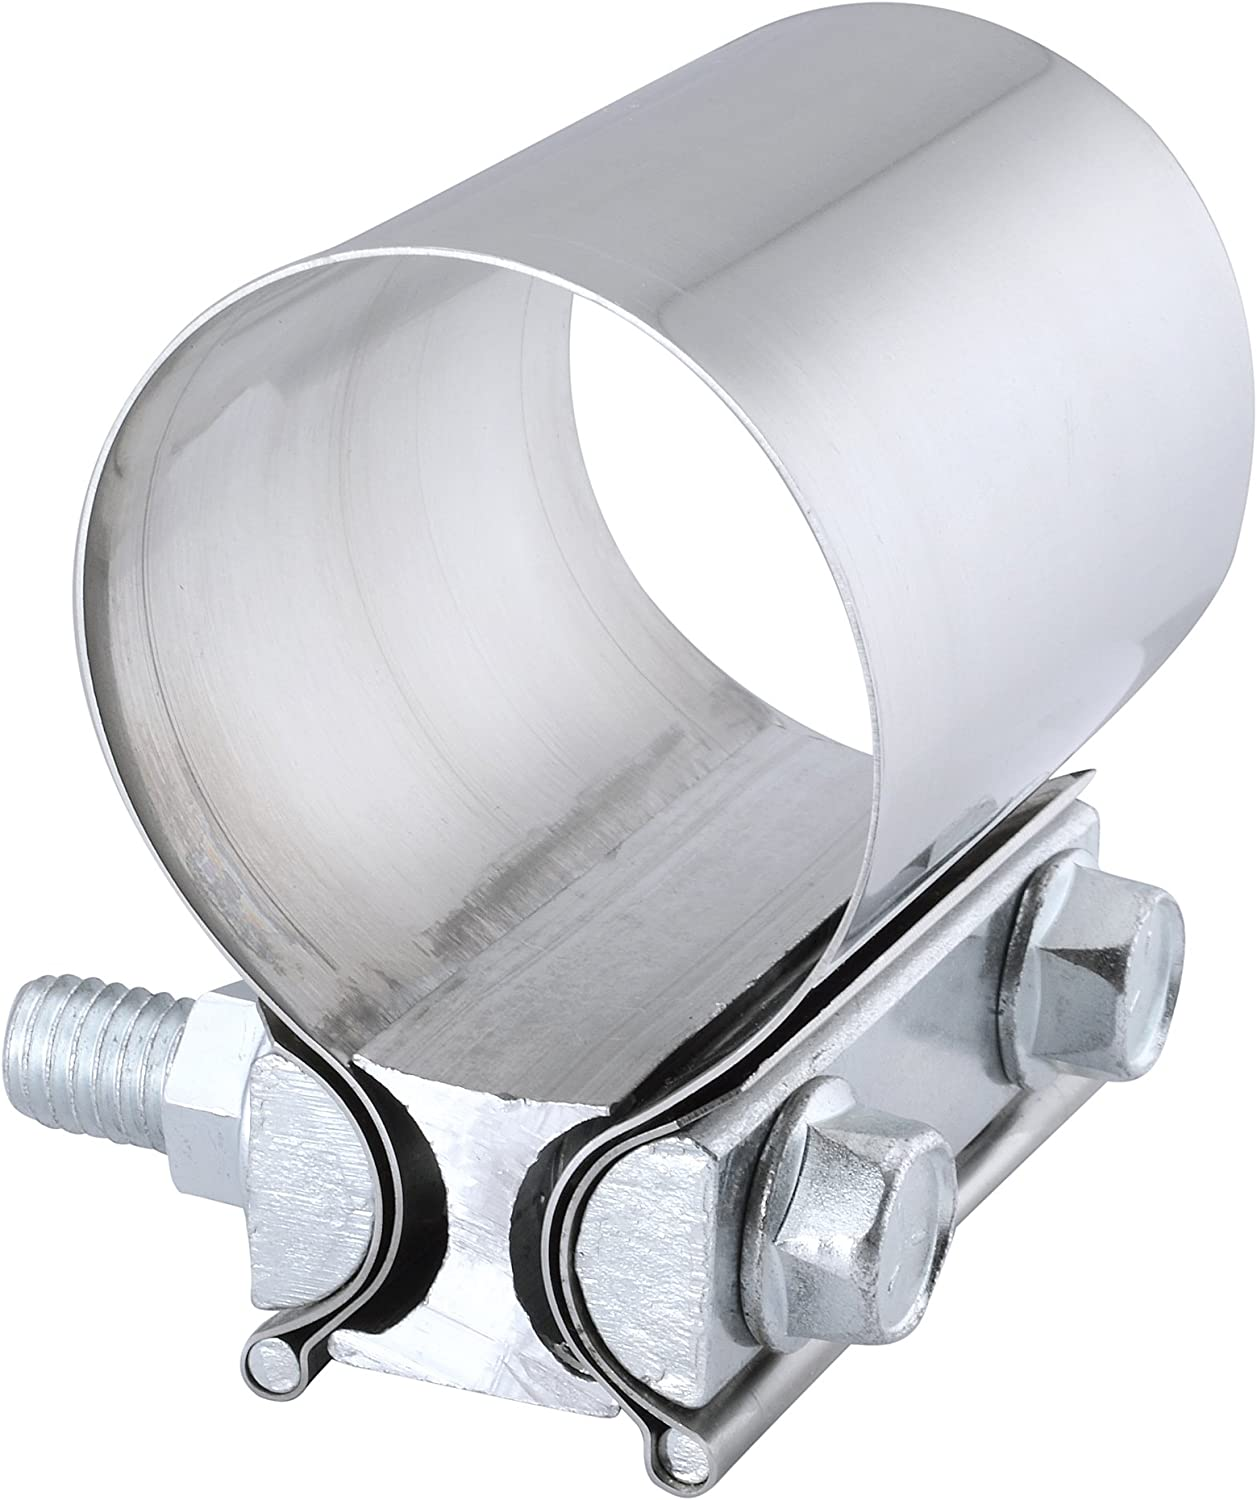 Mufflers and Catalytic Converters 2X 2.0 Inch Stainless Steel Butt Joint Exhaust Band Clamp Sleeve for Exhaust Pipes